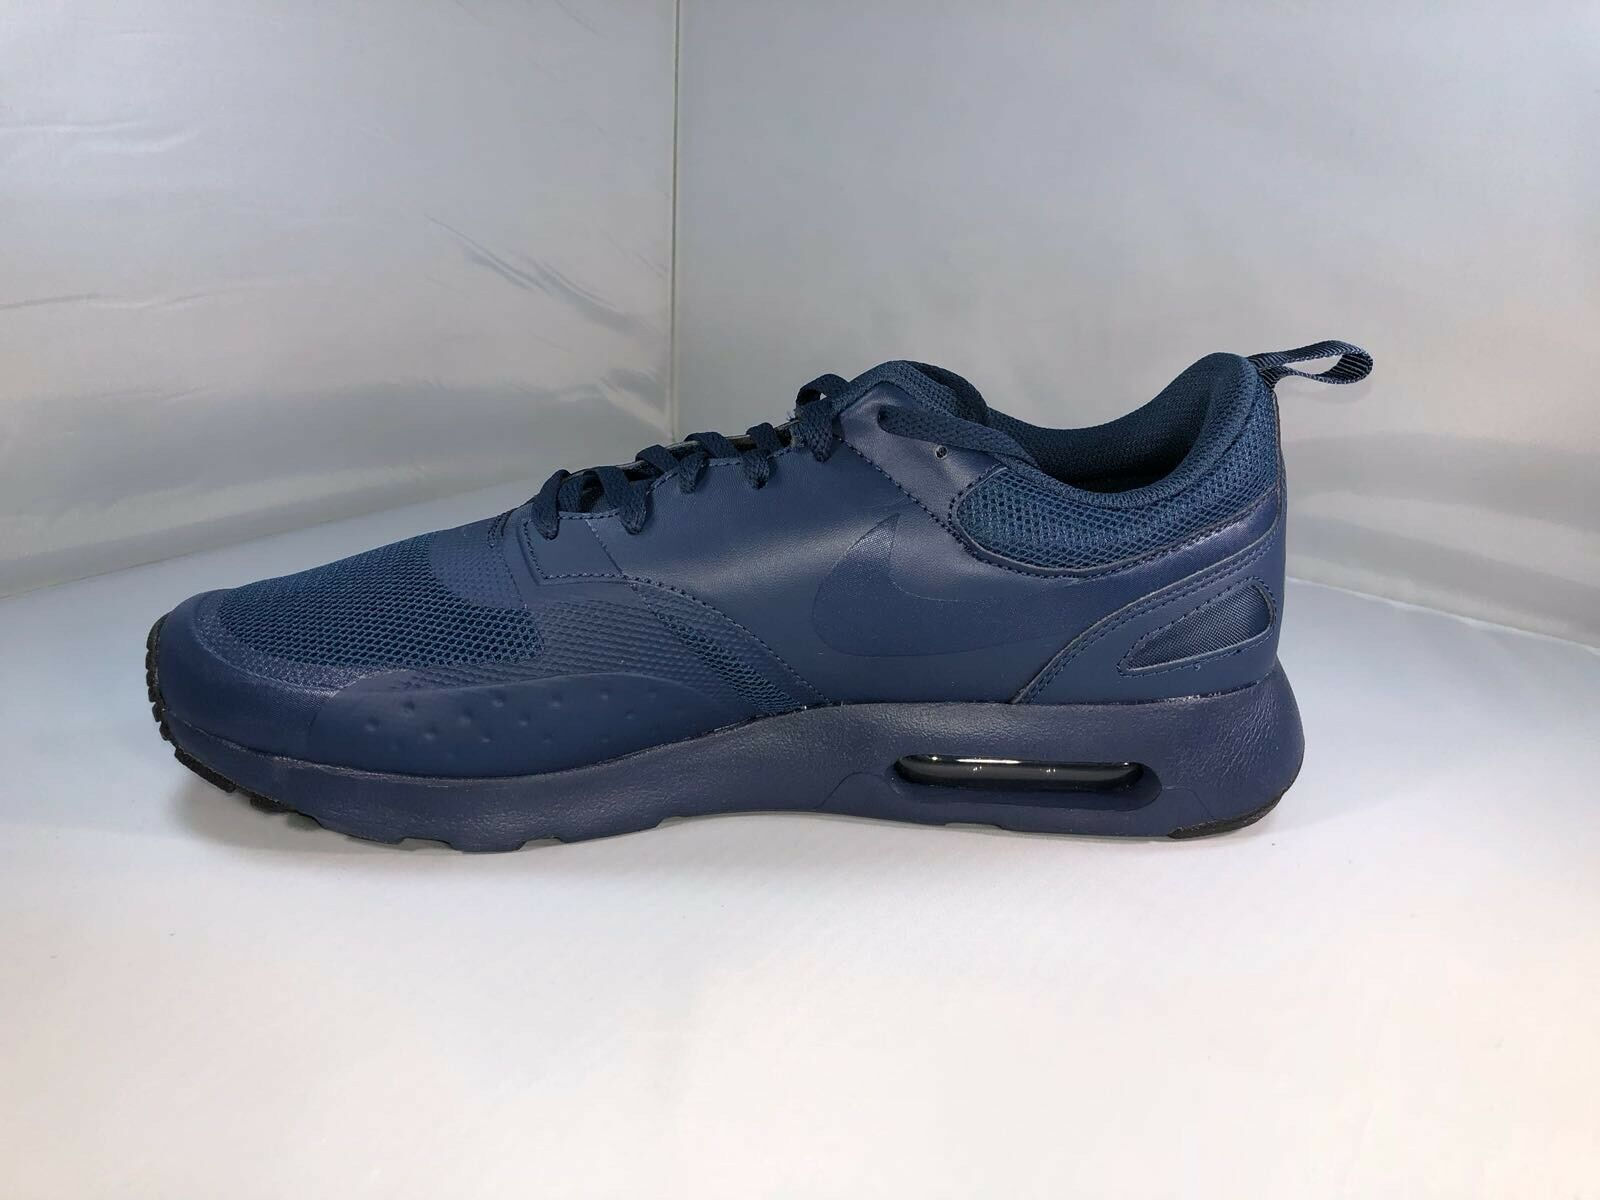 Wild casual shoes New Nike Air Max Vision Men's Running Training Shoes Navy 918230 401